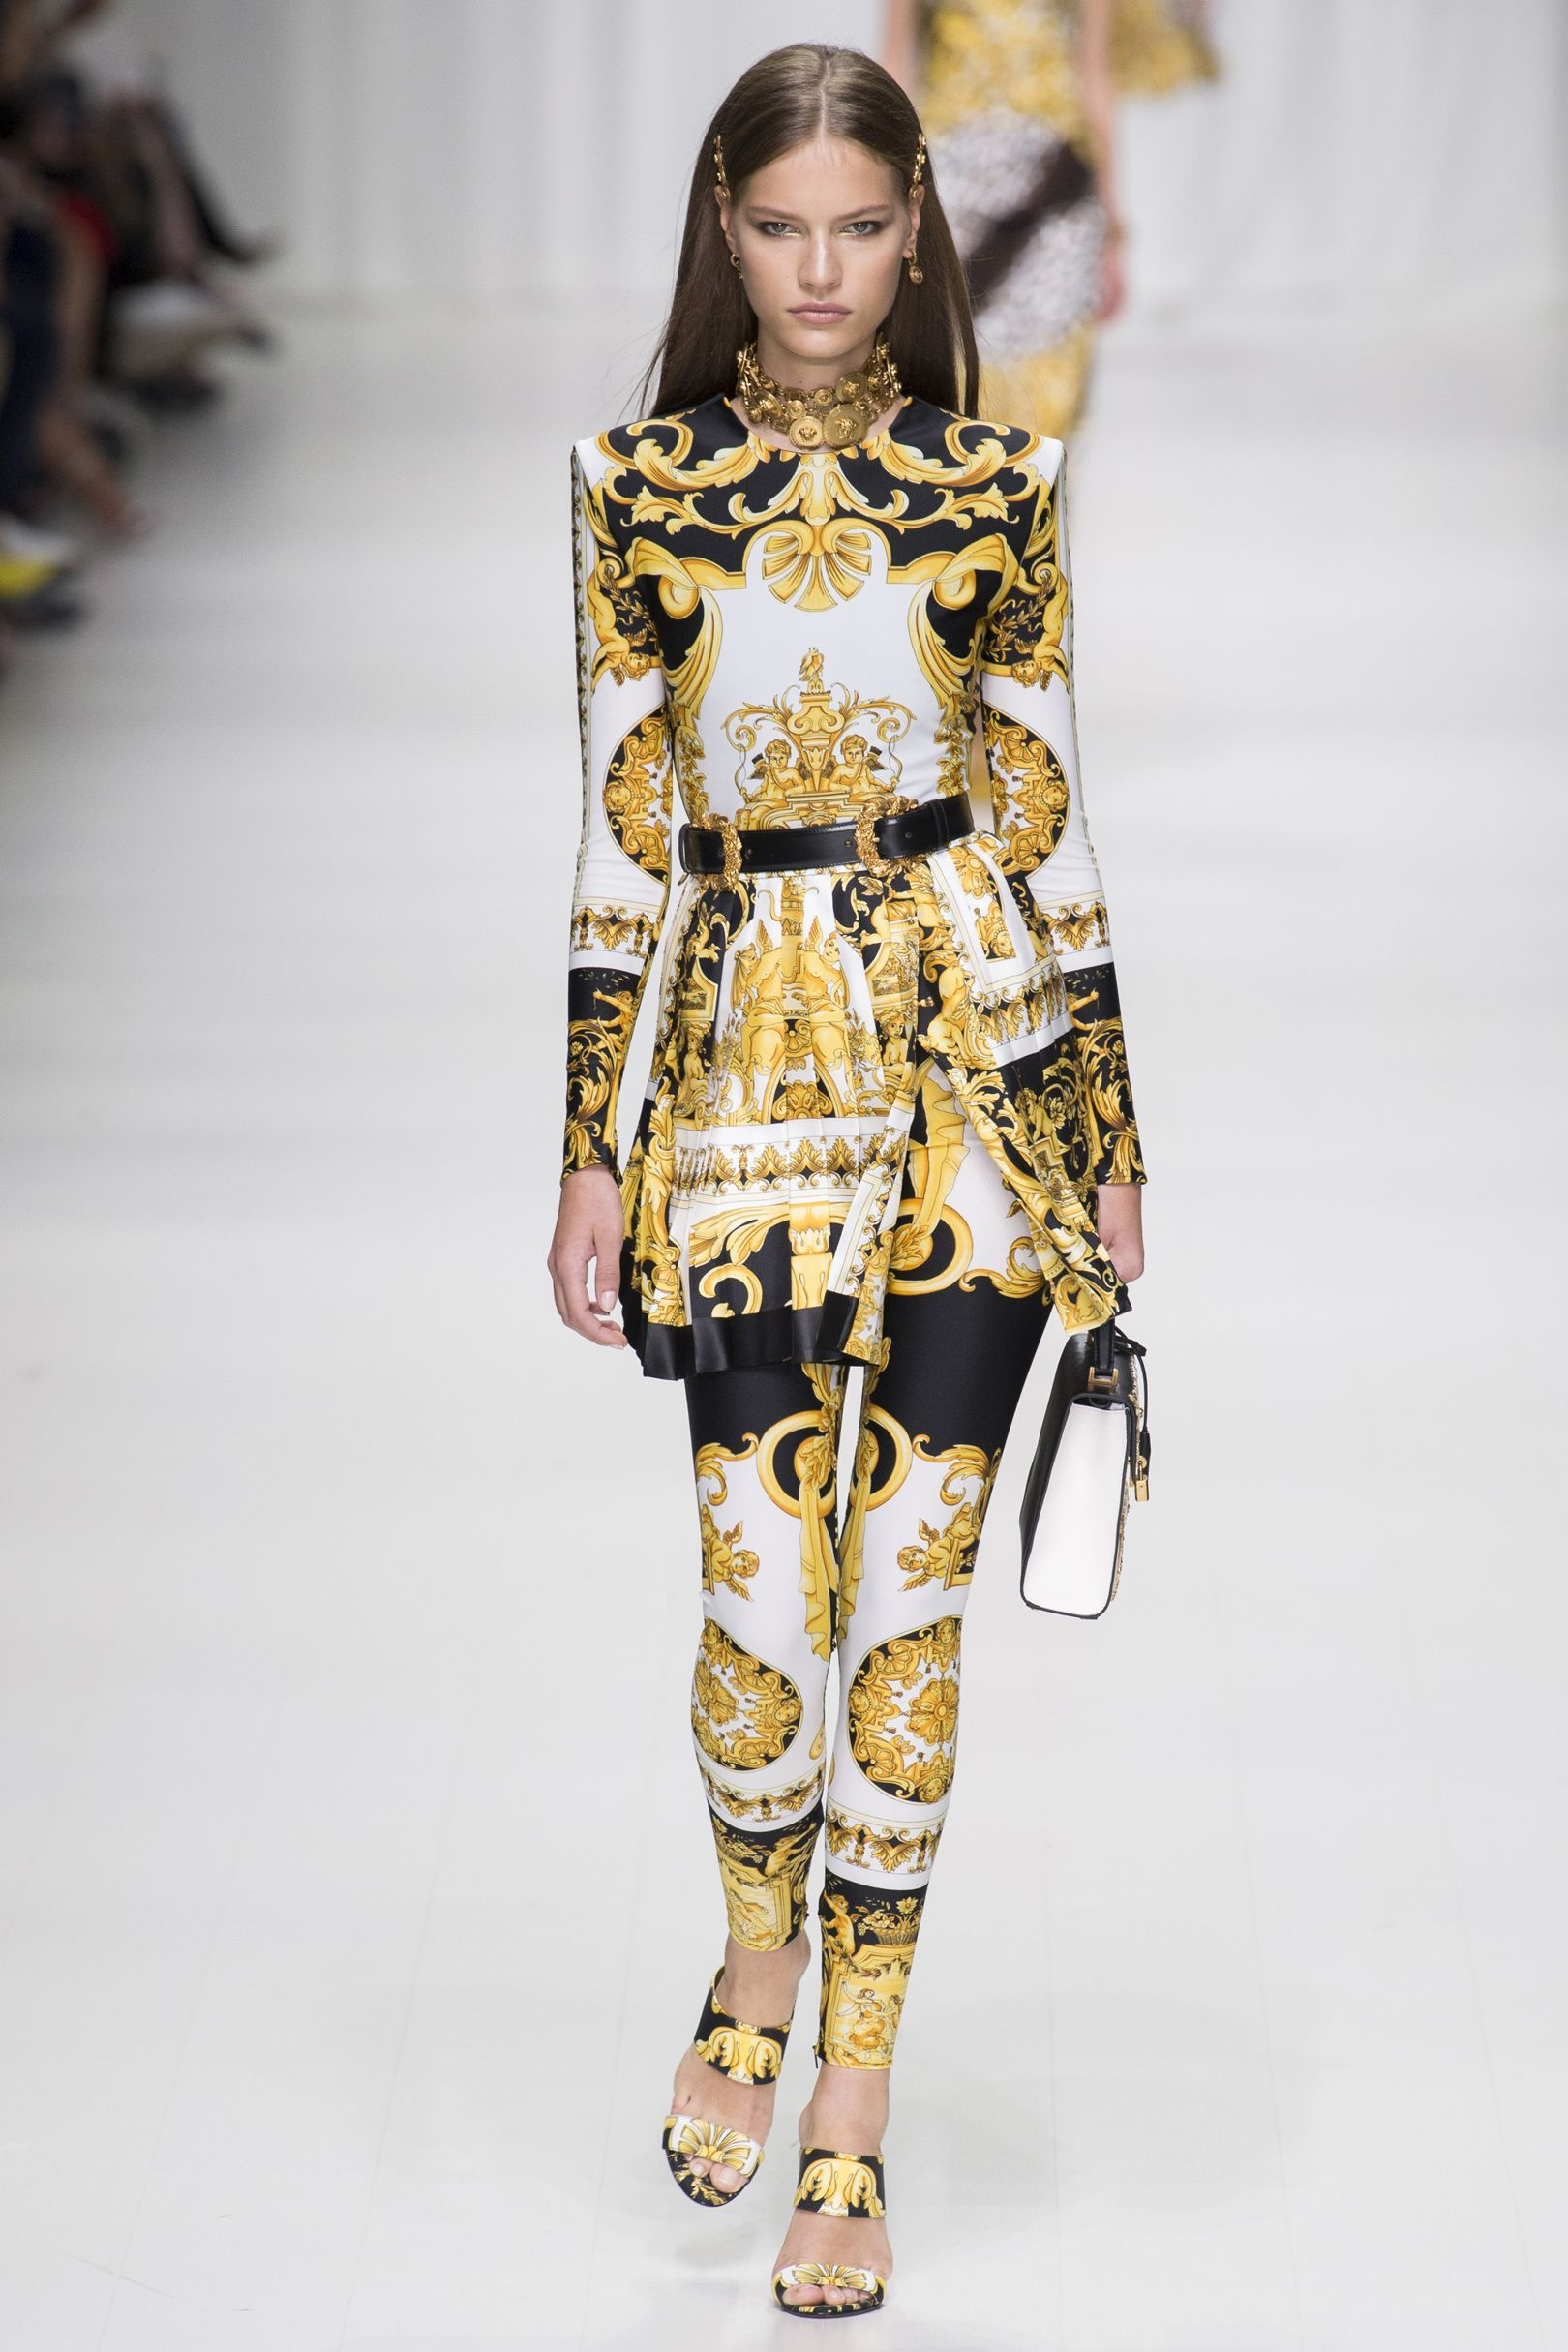 7d1cf506fd4a46 Versace black, white & gold classic opulent print on a long sleeve top (or  micro-mini dress ) and matching print leggings #SS18...x